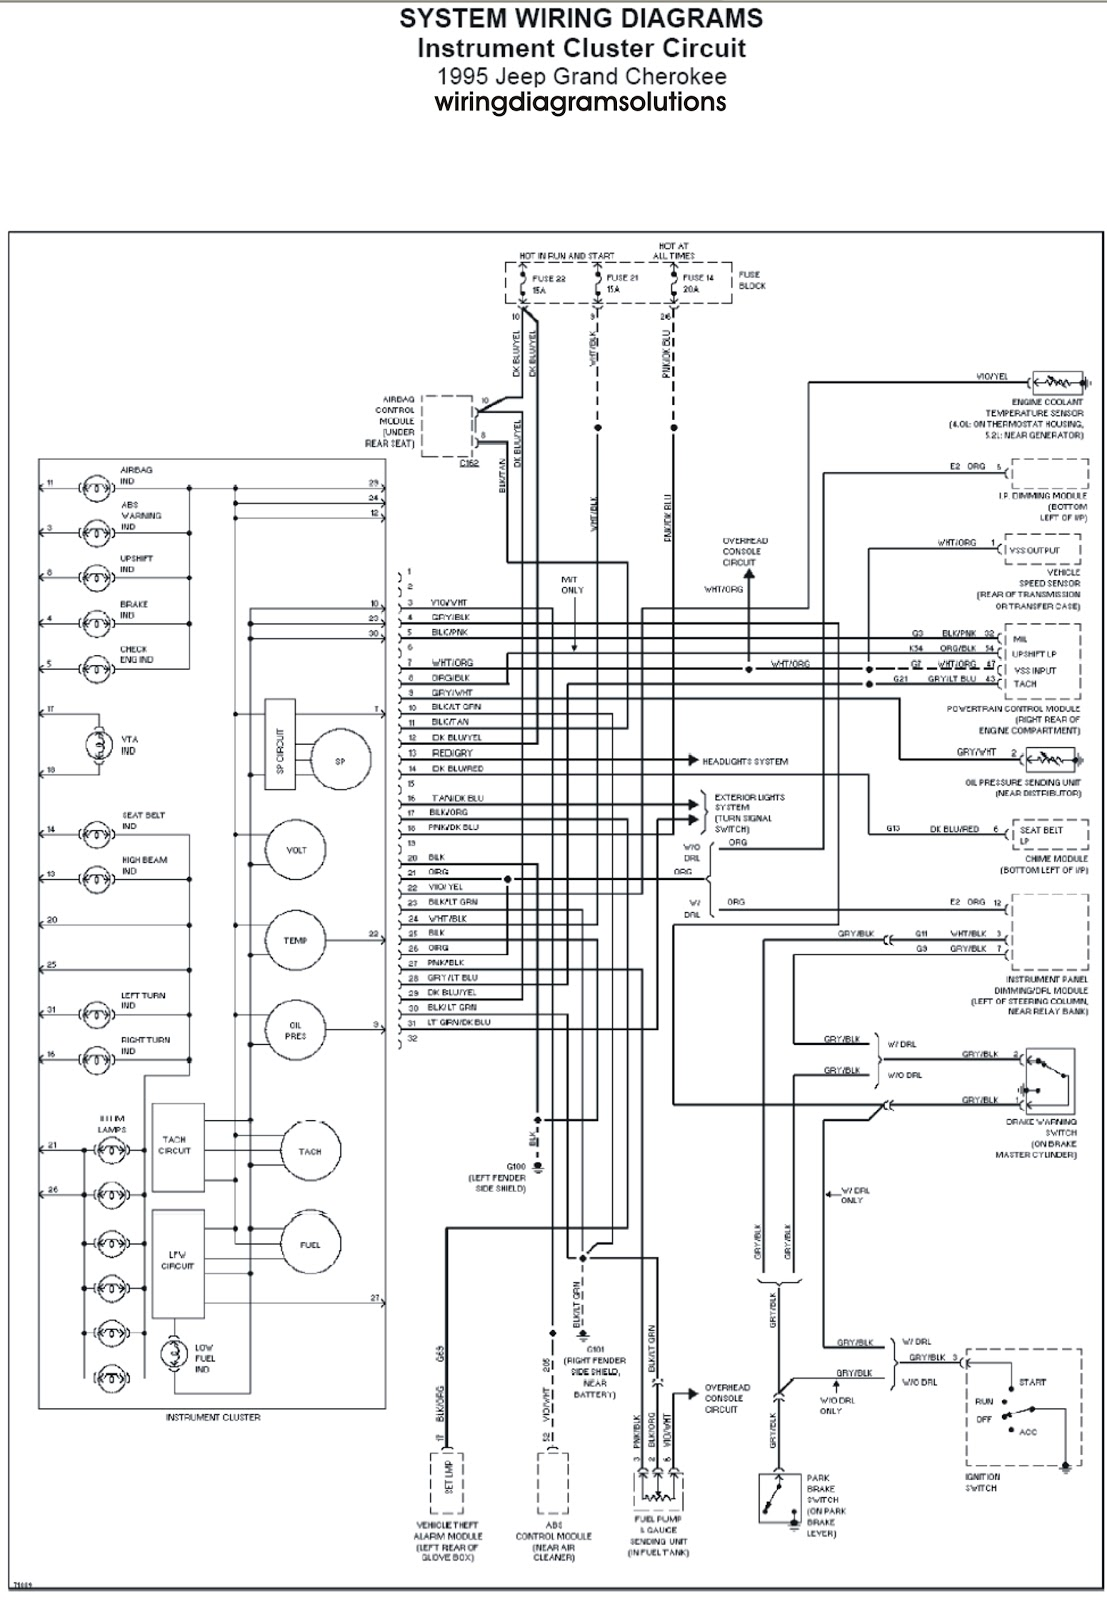 2001 Jeep Cherokee Sport Wiring Diagram from 3.bp.blogspot.com